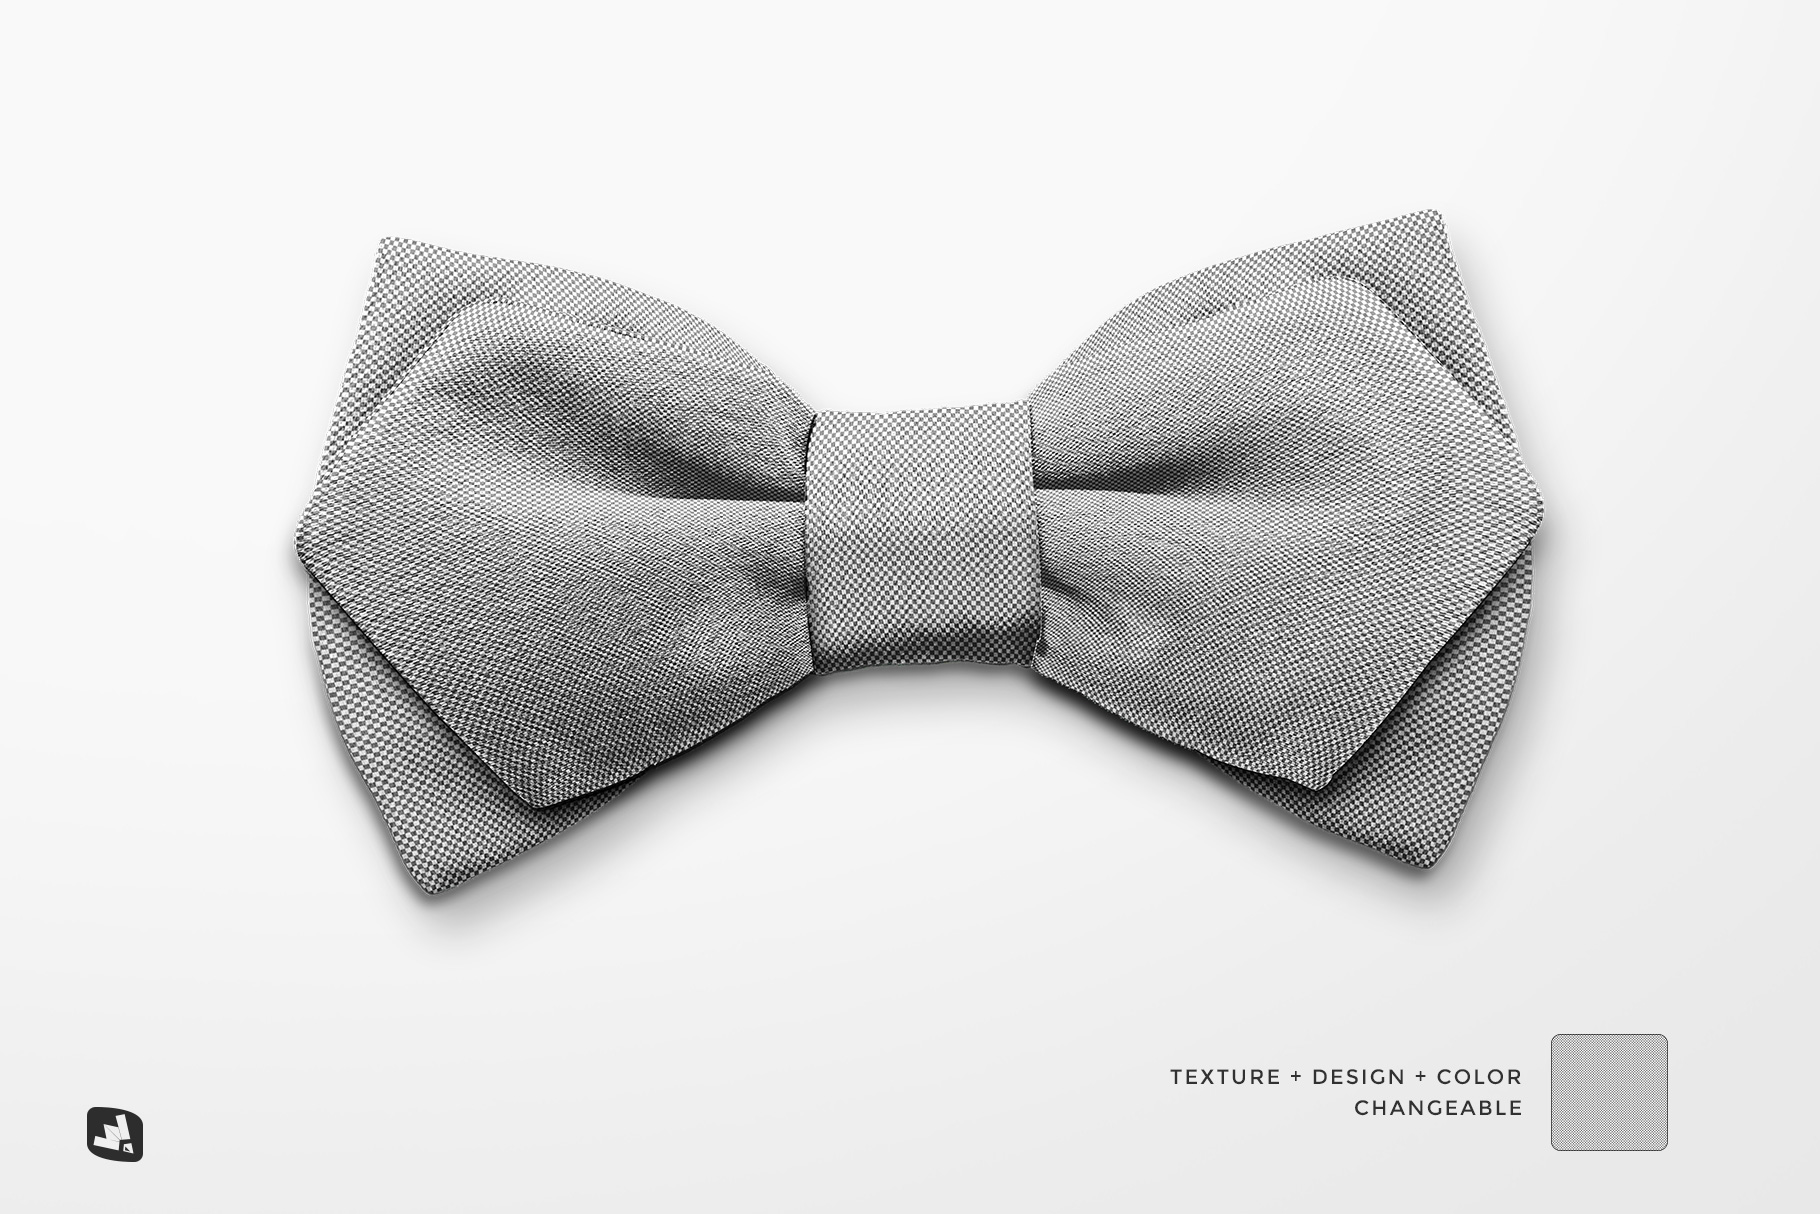 editability of the two-ply bow tie mockup